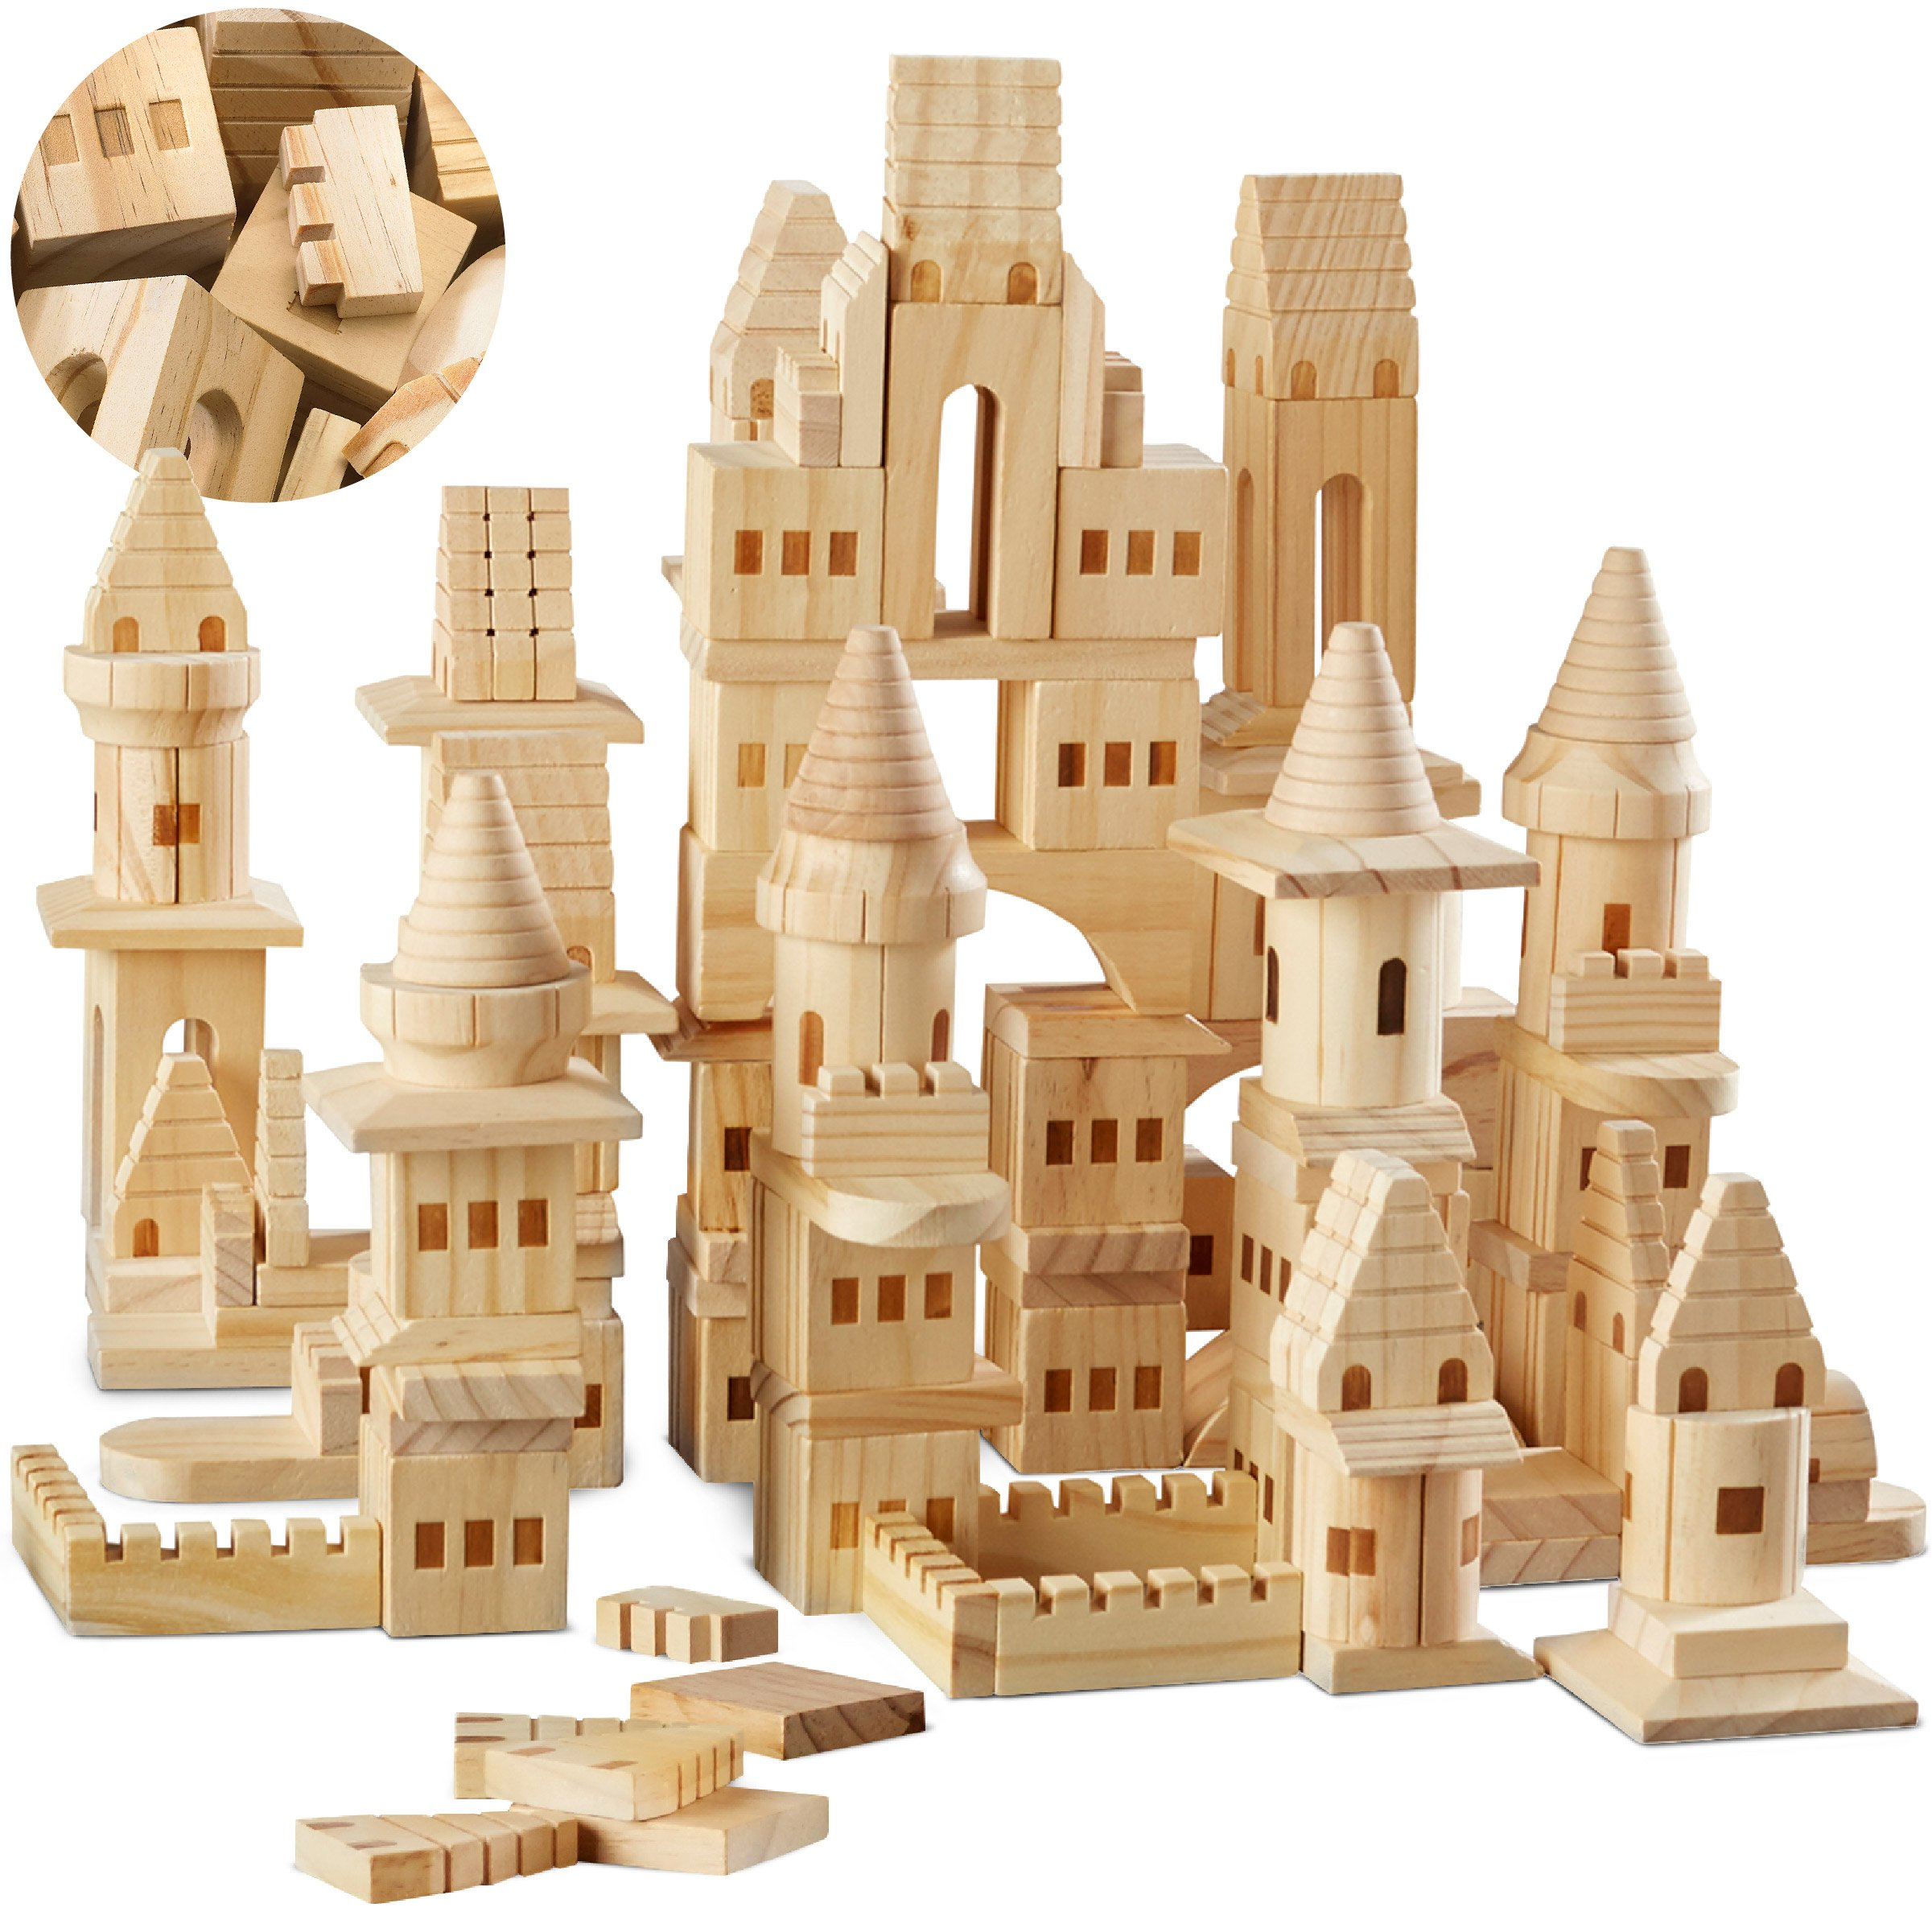 FAO Schwarz {150 Piece Set} Wooden Castle Building Blocks Set Toy Solid Wood Block Playset Kit for Kids, Toddlers, Boys, and Girls, Fantasy Medieval Knights and Princess Theme with Bridges and Arches